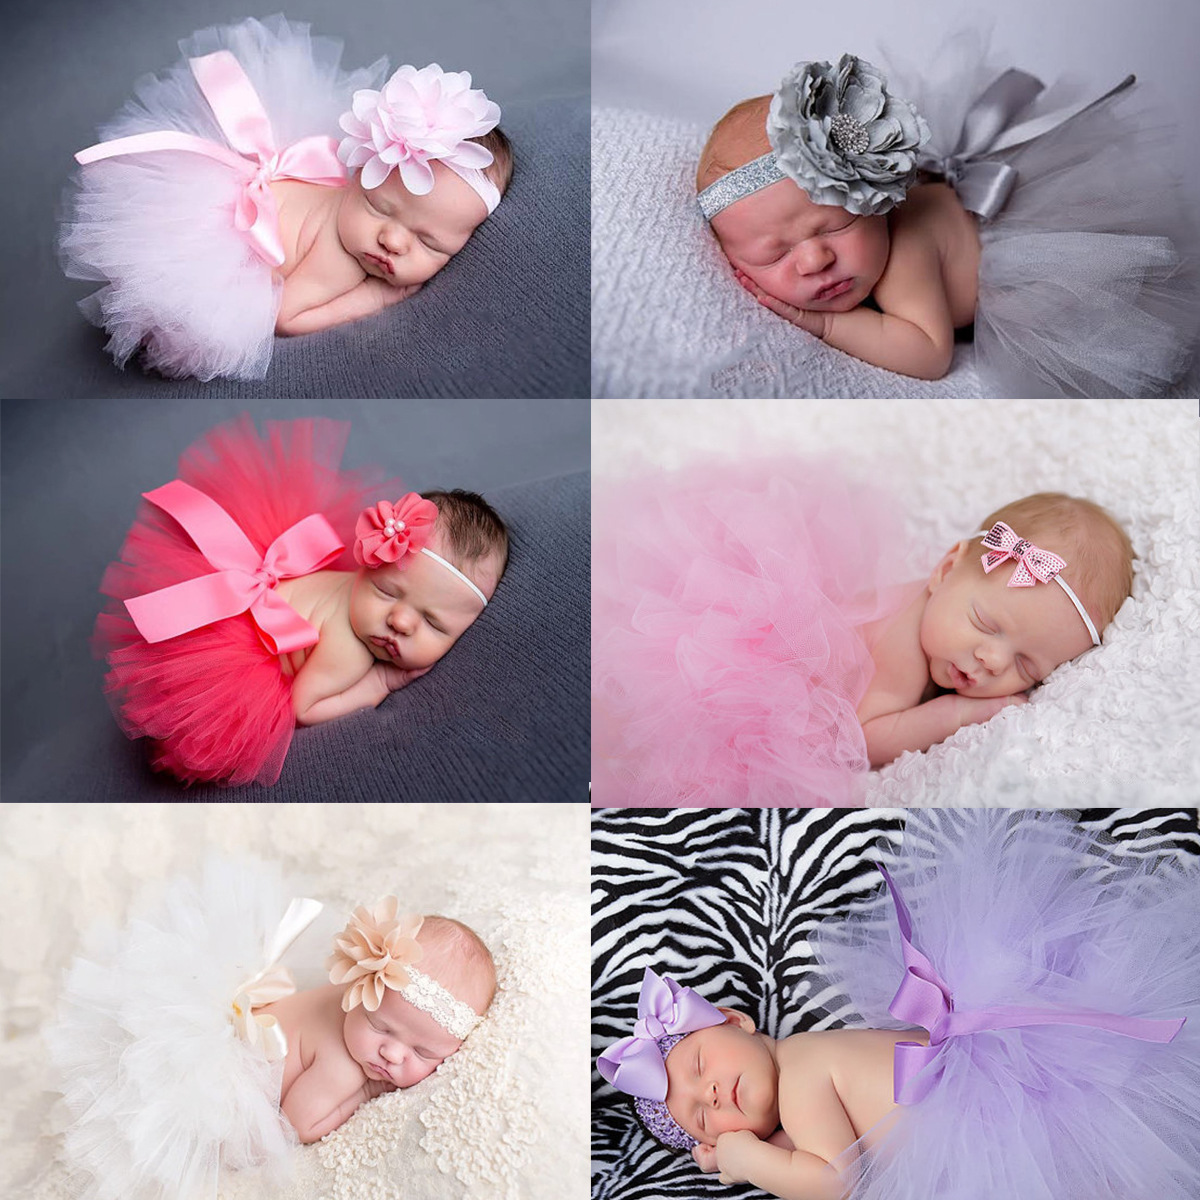 Baby Photography Props Infant Costume Outfit Princess Baby Tutu Skirt Headband Baby Photography Prop Newborn Photography Outfit